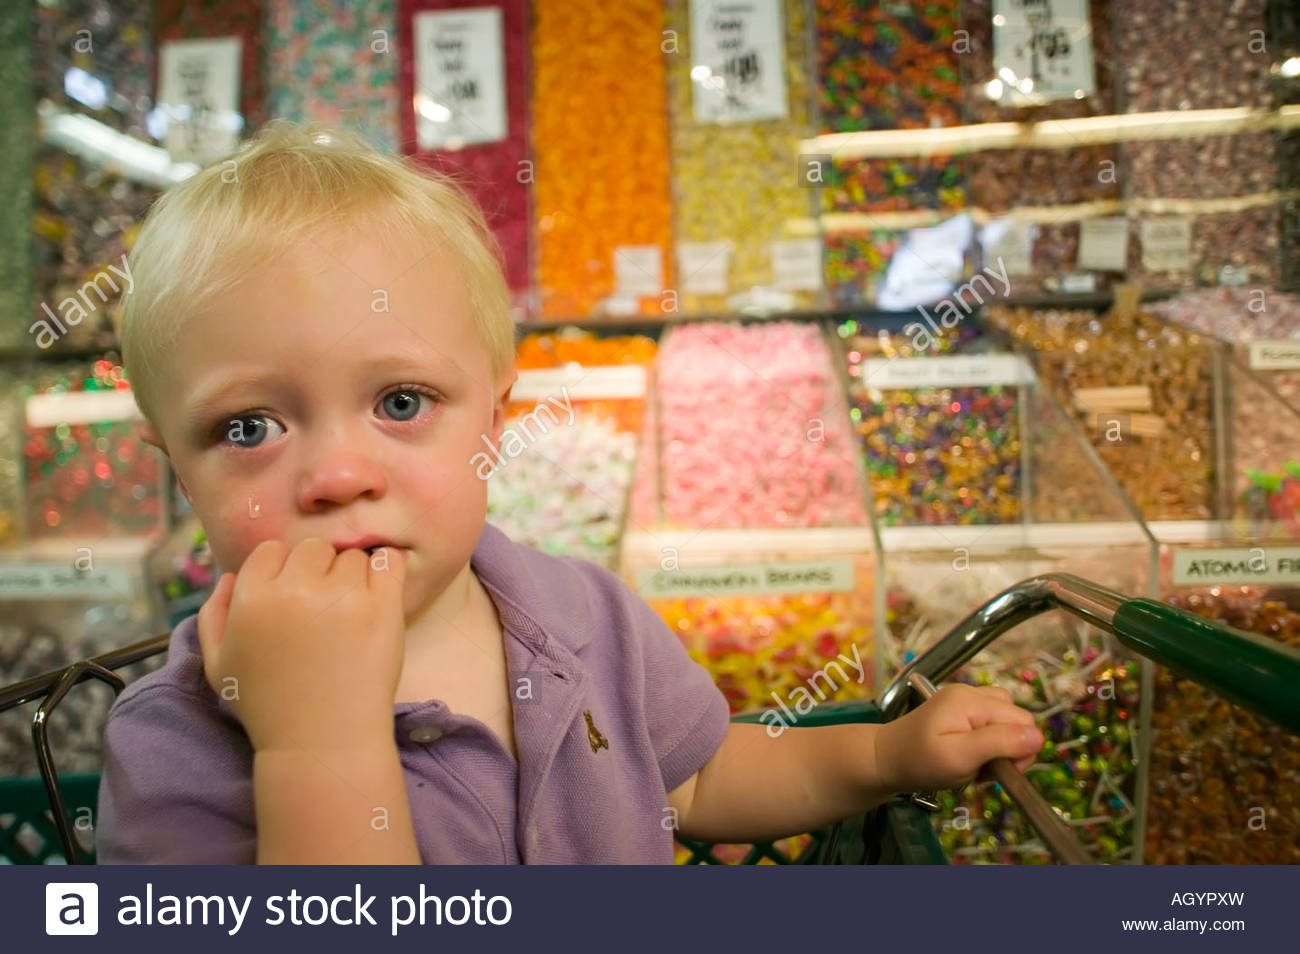 Toddler boy crying in candy aisle of grocery store - Stock Image